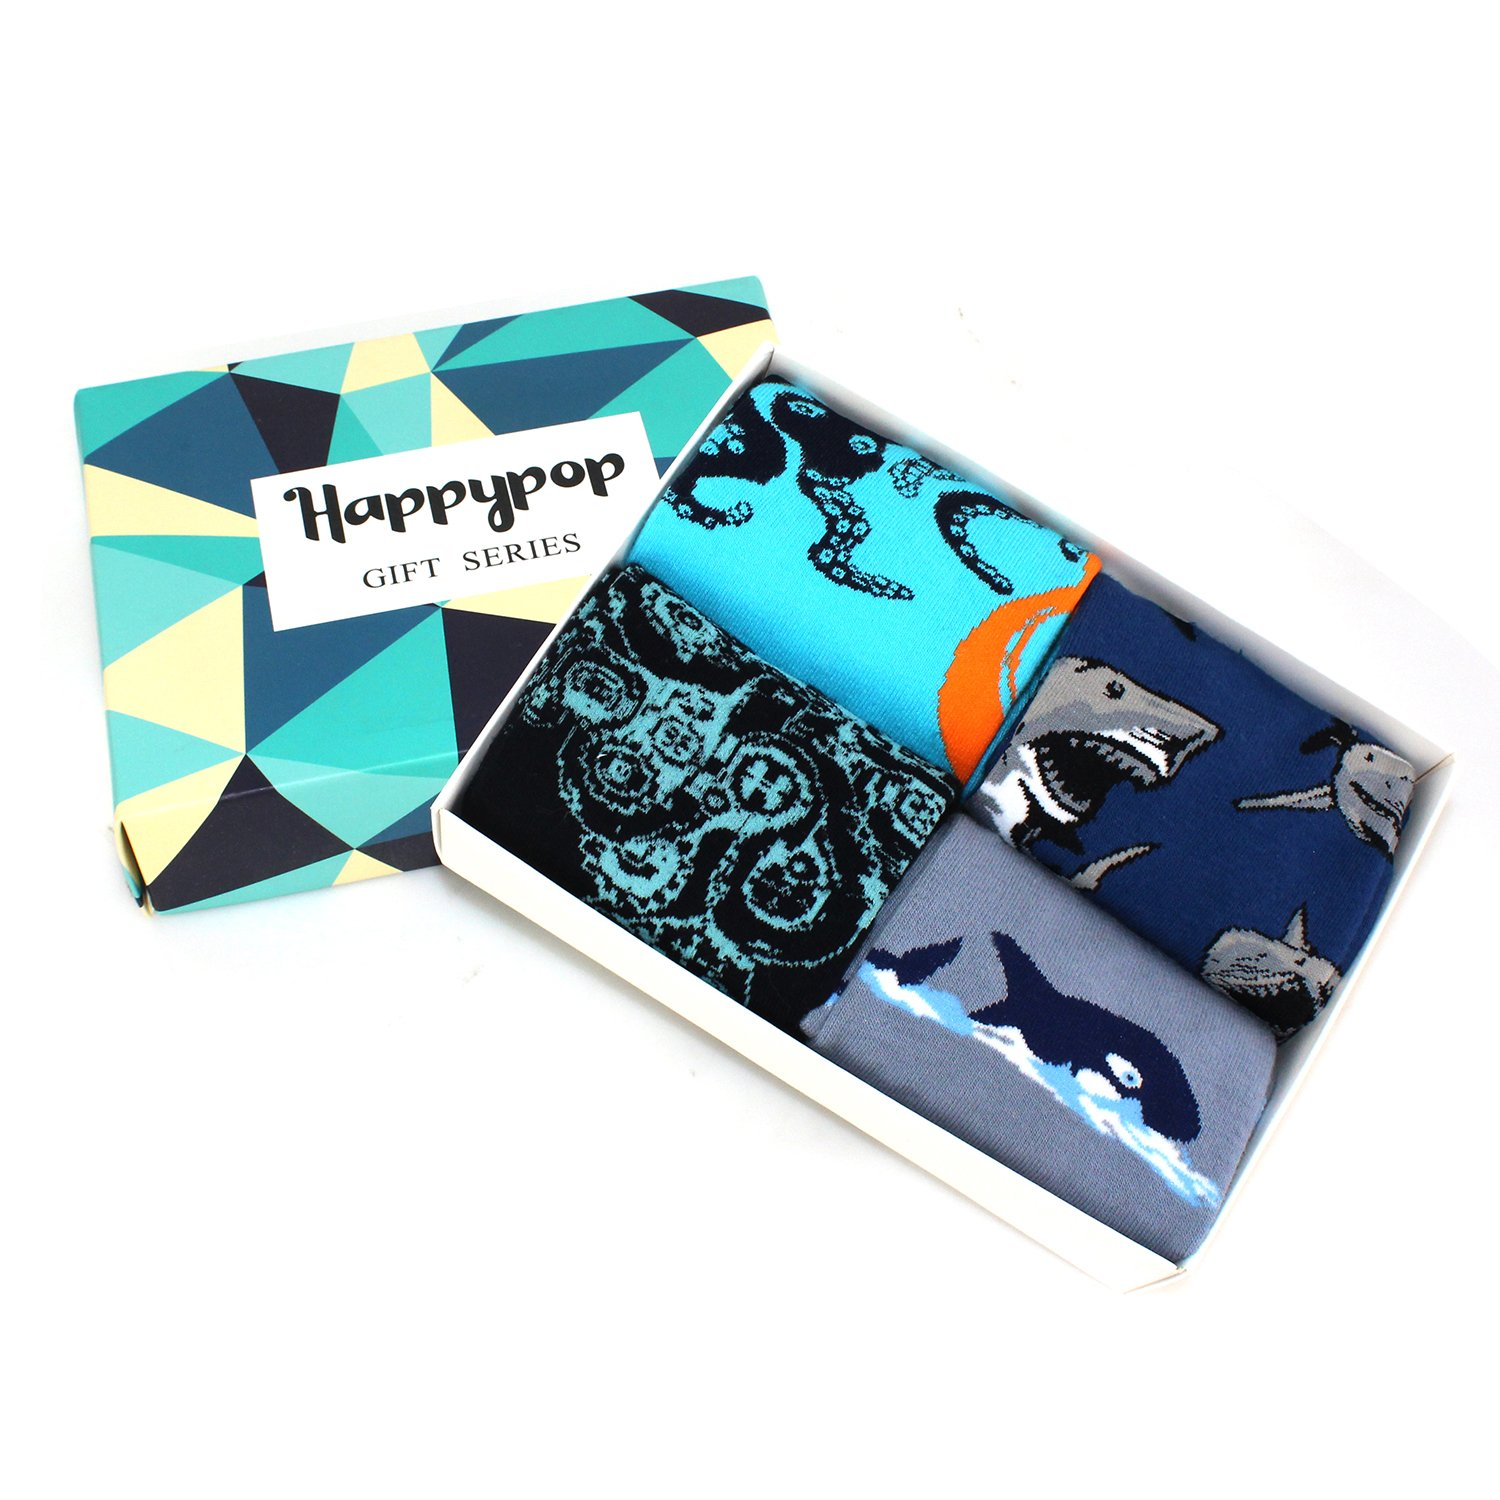 Novelty Cool Crazy Funny Dress Socks,Colorful Cotton Crew Socks, Shark Whale Octopus Gifts for Men by Happypop (Image #6)